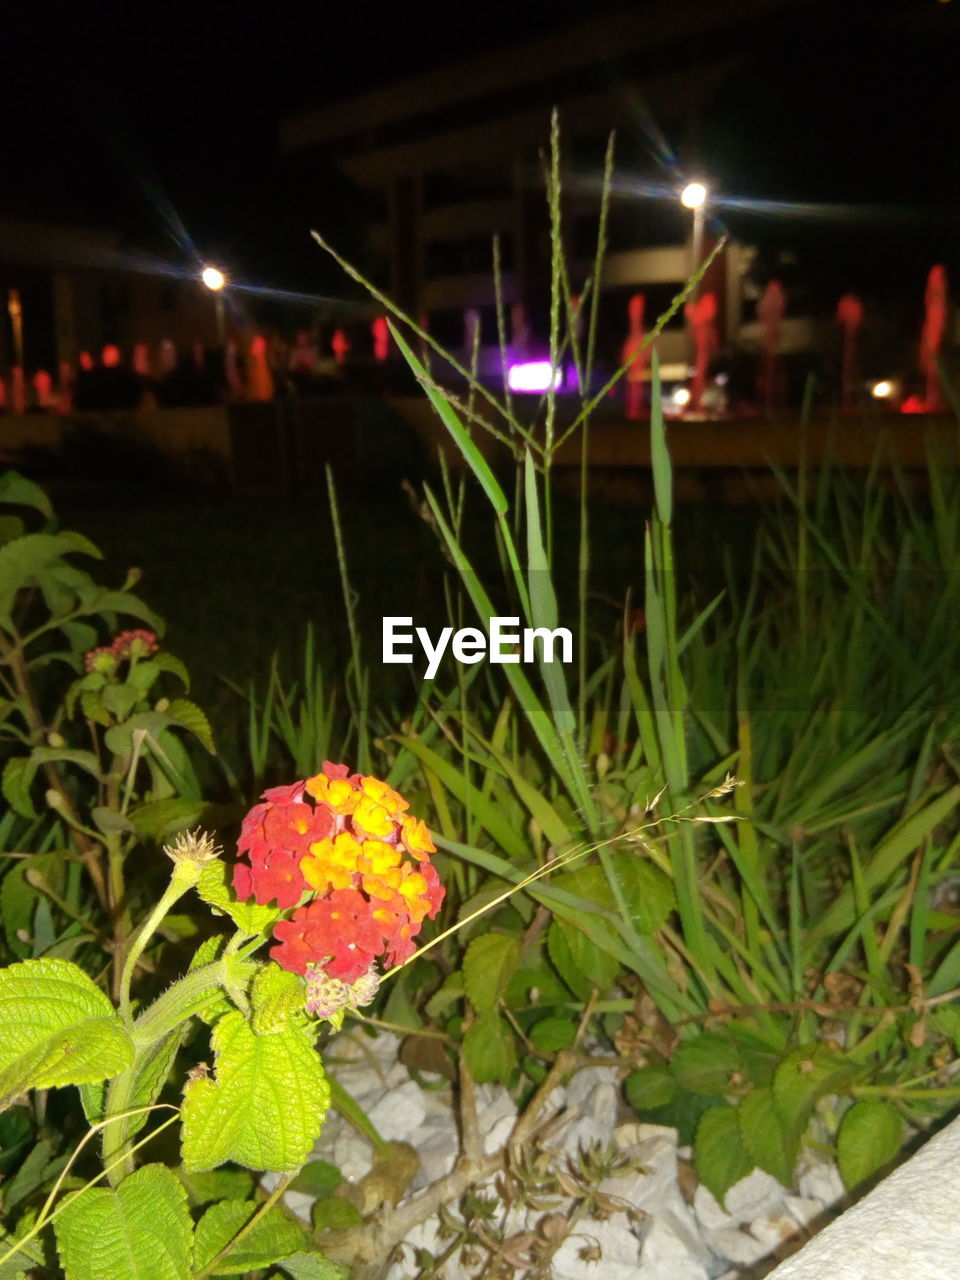 night, focus on foreground, growth, nature, no people, outdoors, freshness, leaf, plant, close-up, red, flower, beauty in nature, fragility